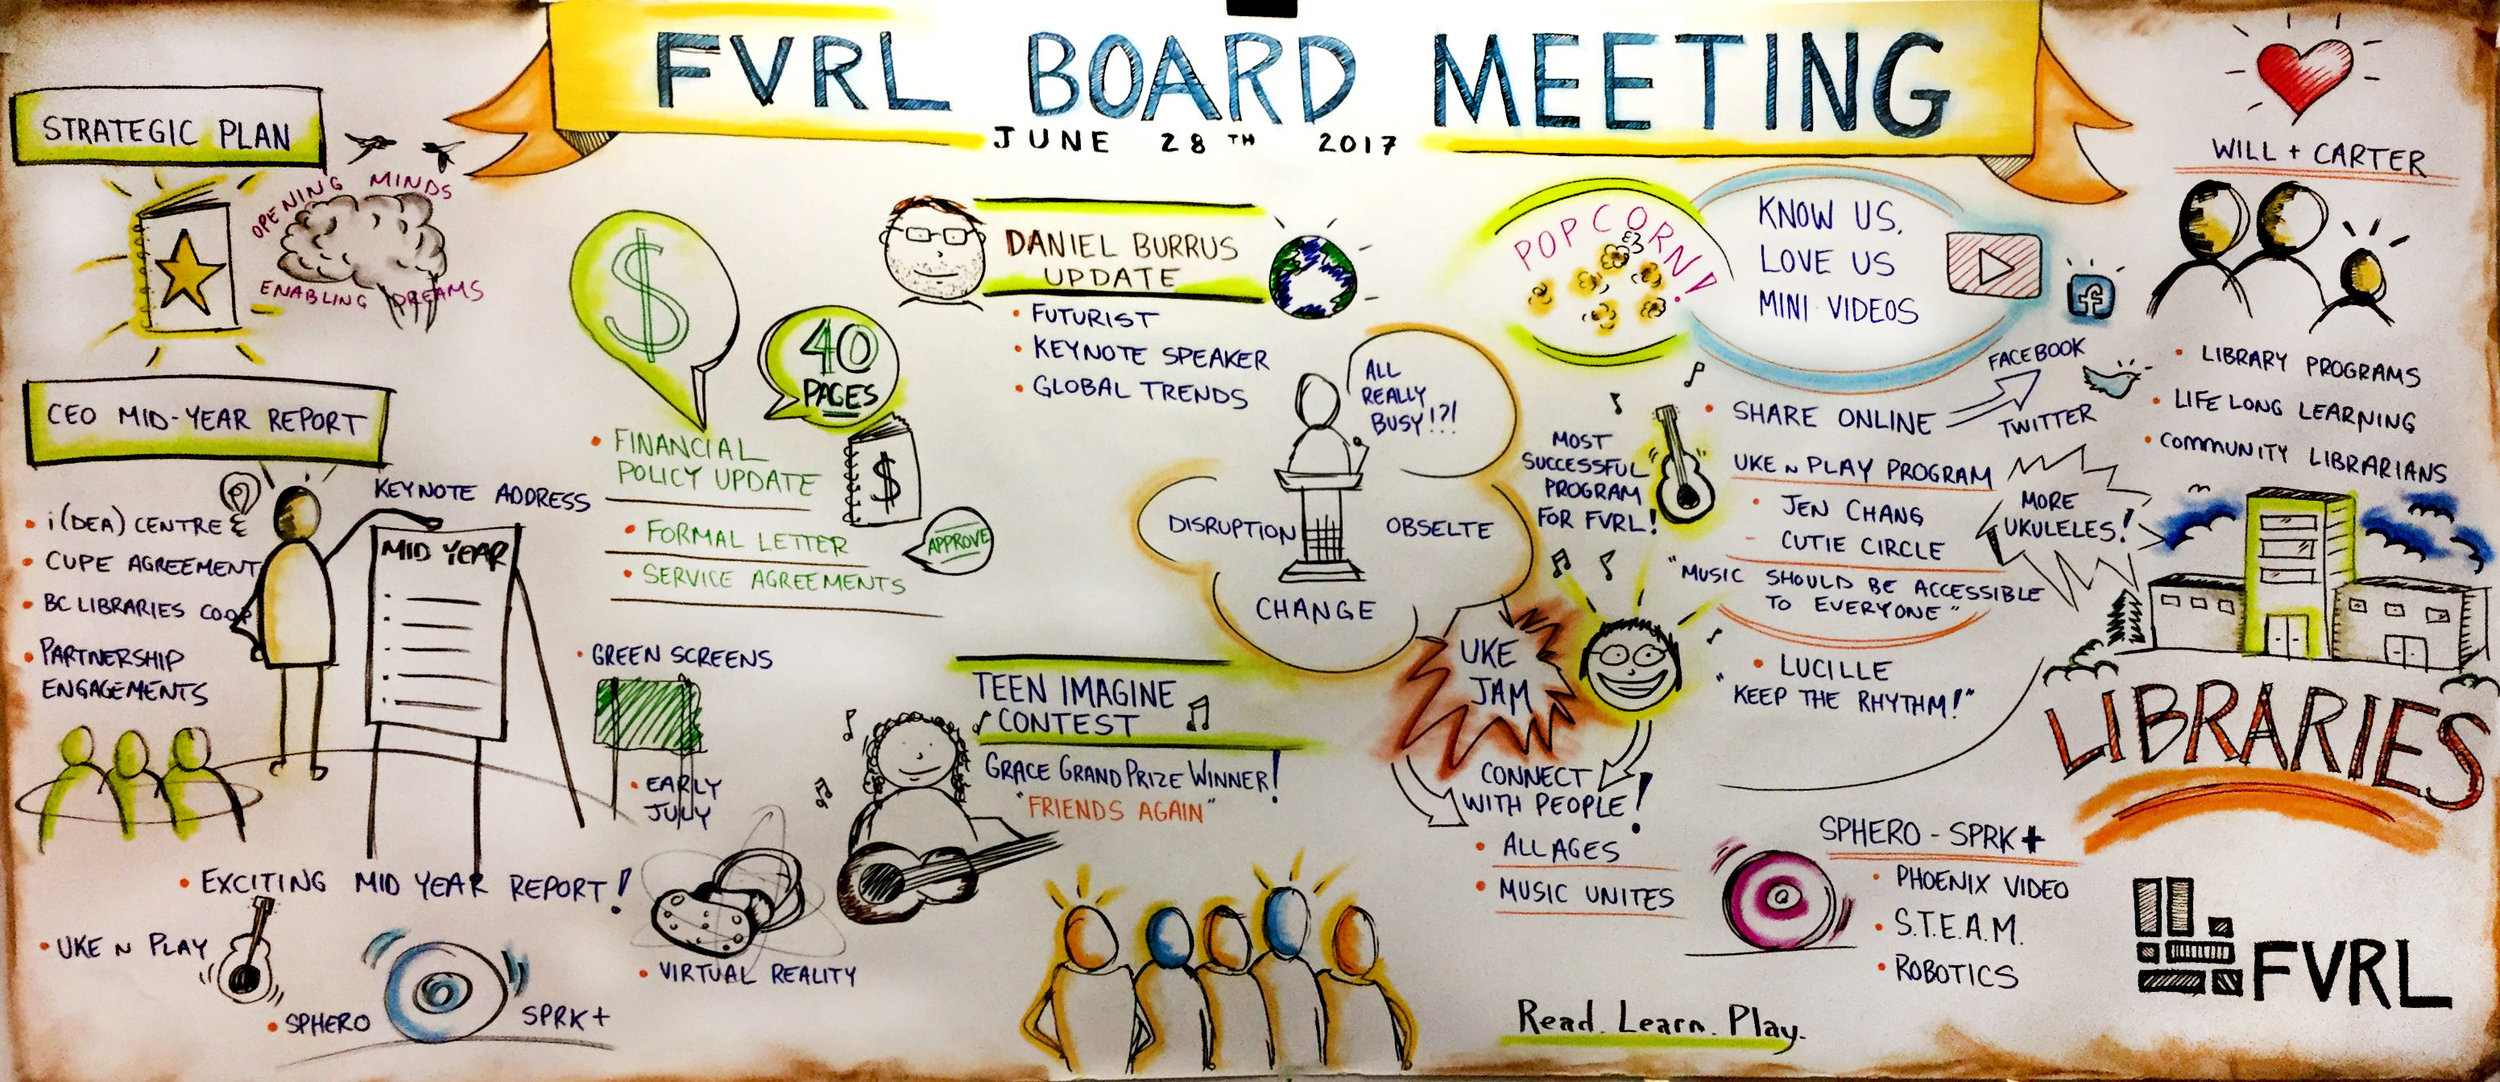 FVRL BOARD MEETING - JUNE 2017 - Live graphic recording for FVRL Management and Board Members at FVRL Administrative Centre.Topics discussed: Strategic Plan Update 2018 - 2023, CEO Mid-Year Report, Financial Update, Teen Imagine Contest and Meet Will, Ray and Carter video debut.Format: 4' x 8' presentation paper